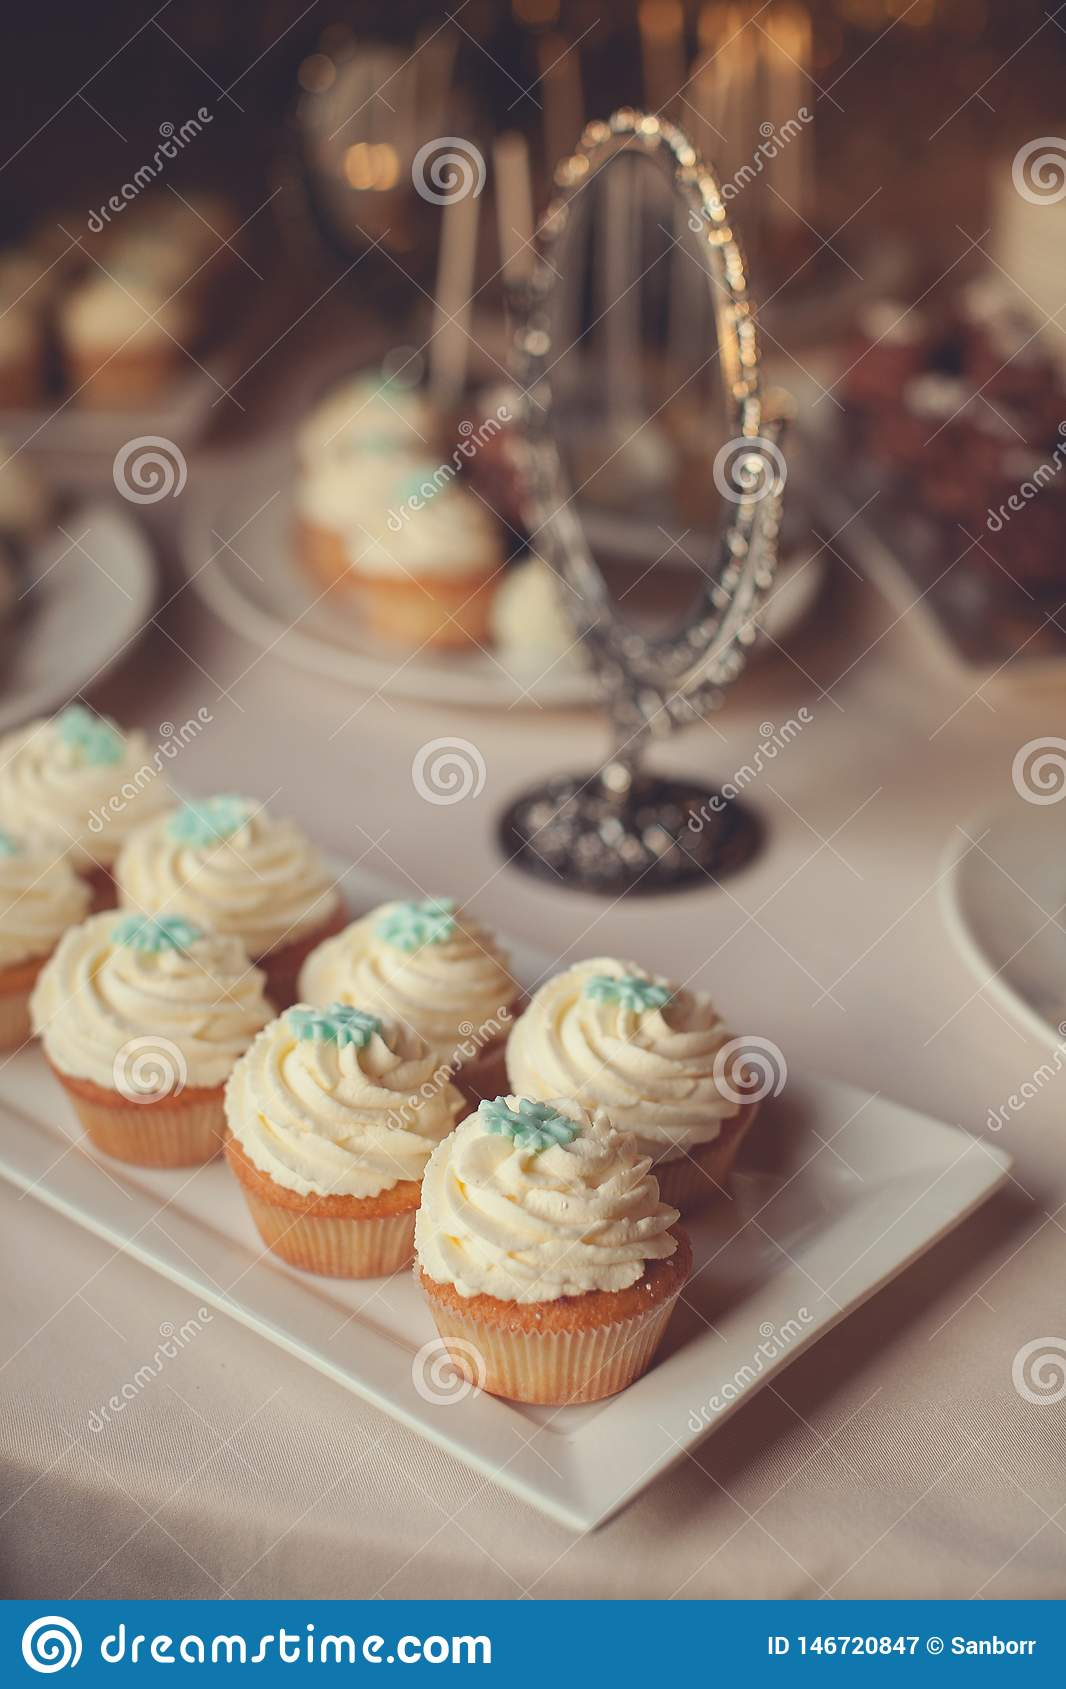 Vanilla cupcakes with cream icing, decorated with decorative snowflake, close-up on a white glass dish, on a festive wedding table